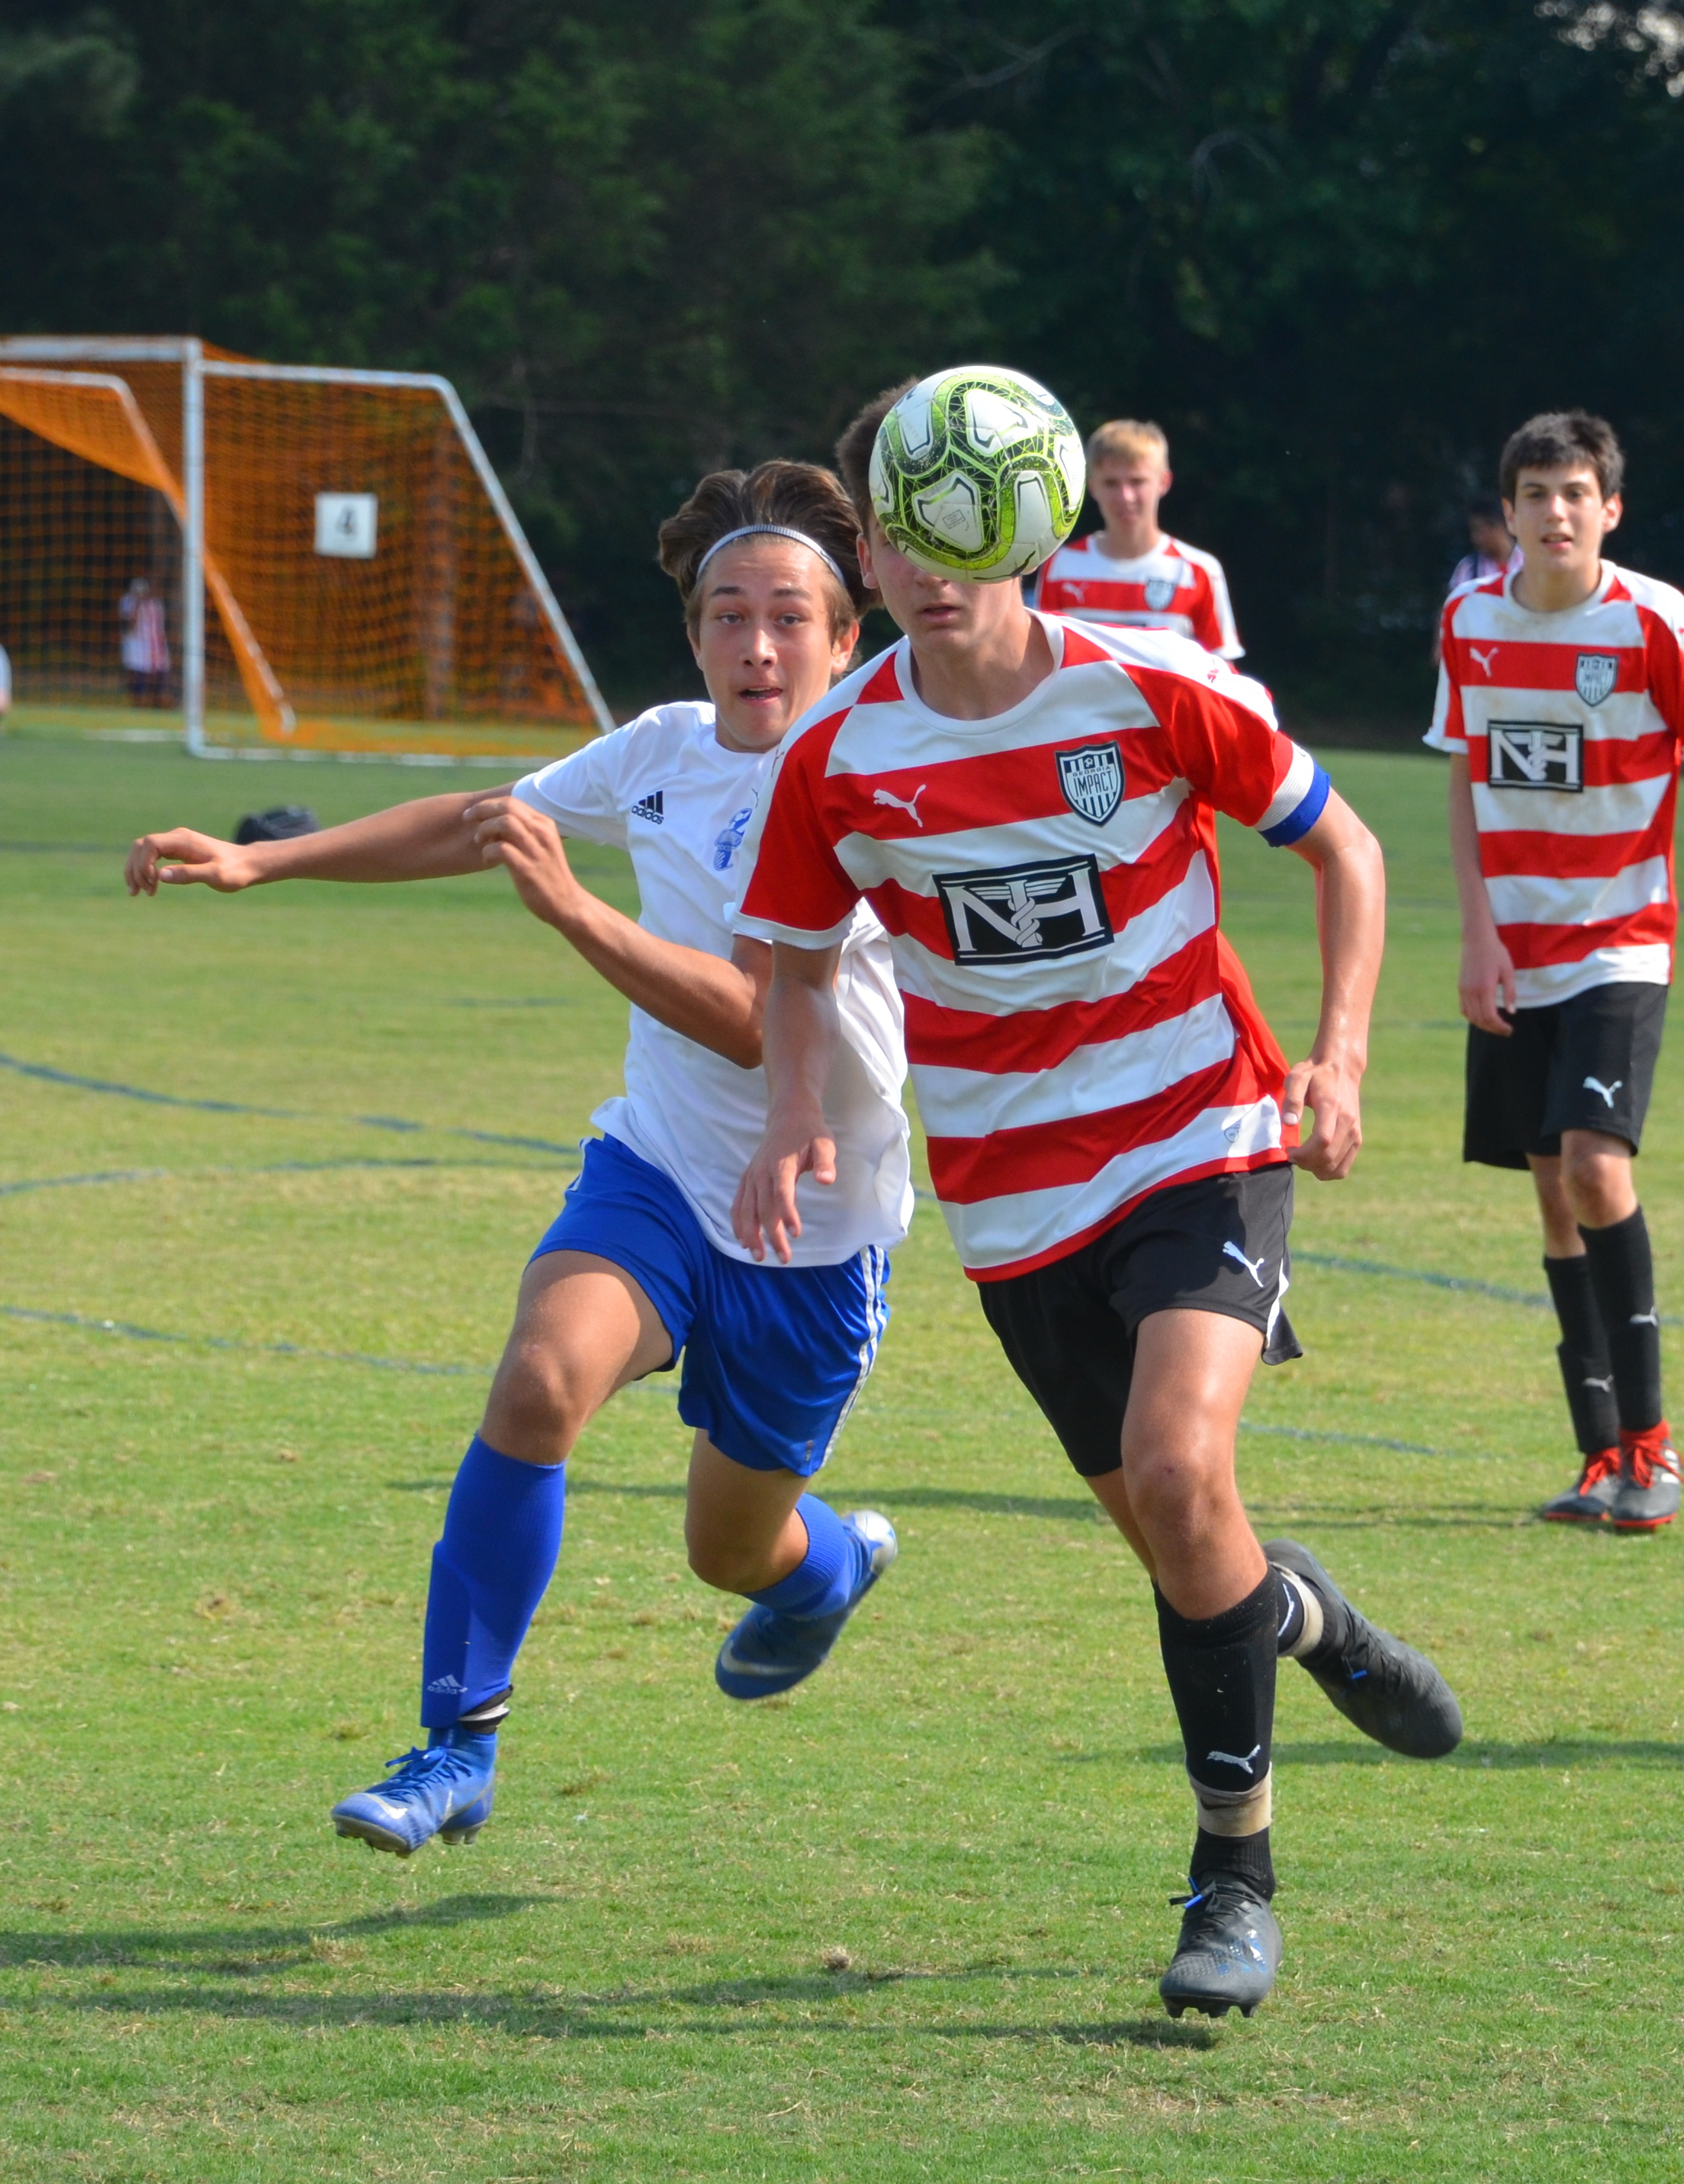 About Us - LCUFC plays home games in the city of Eatonton, GA within 90 minutes of Atlanta, Augusta, Athens and Macon.Learn more ➝